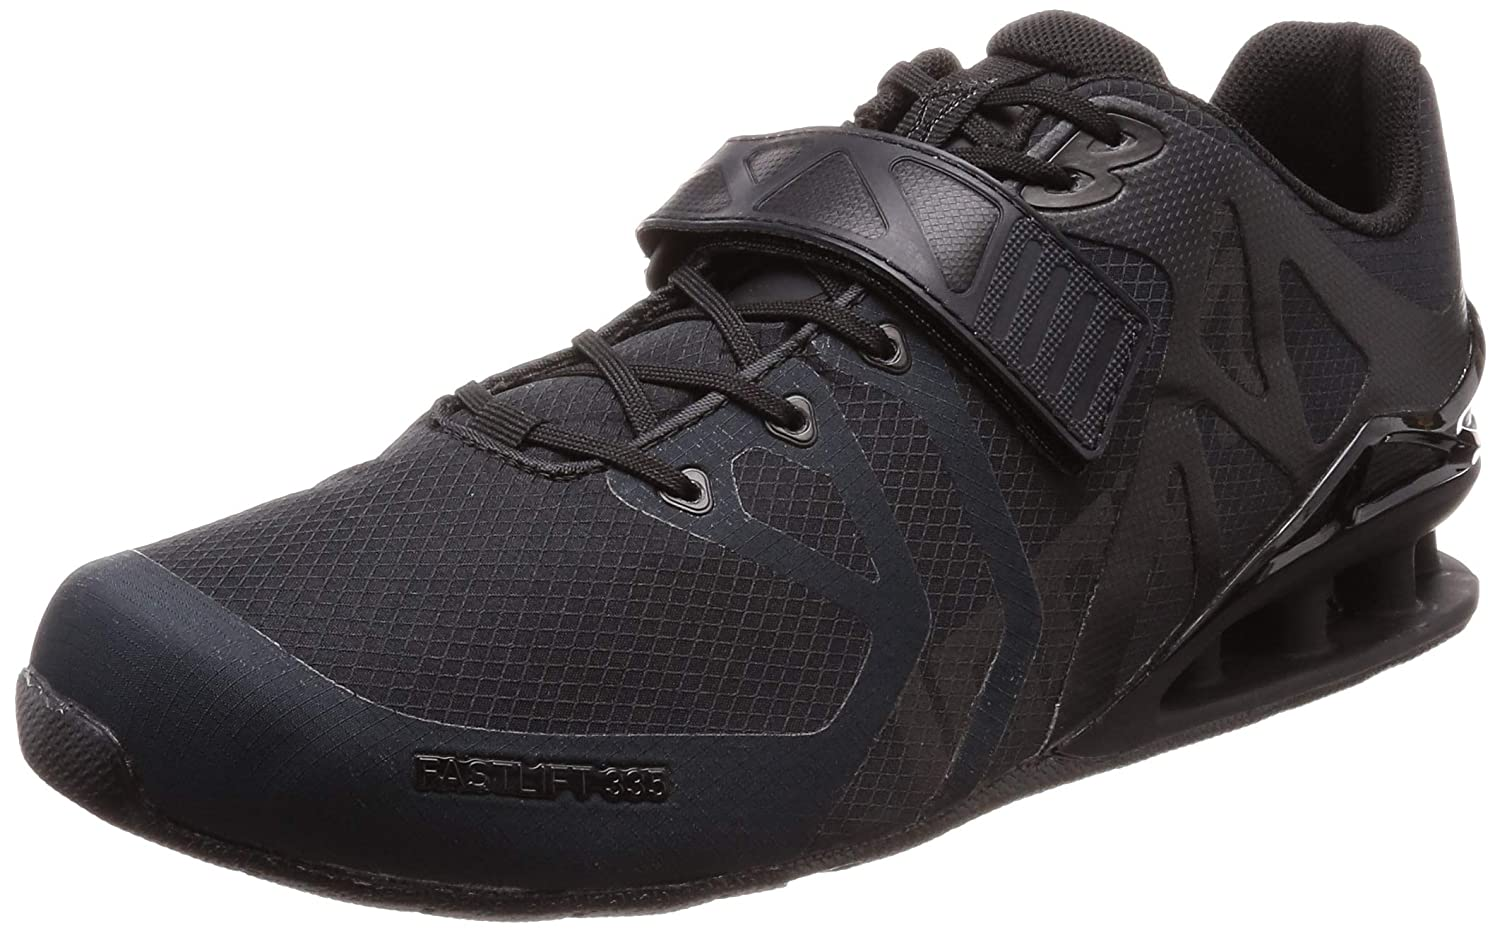 Inov-8 Men's Fastlift 335 Weight-Lifting Shoe Fastlift 335-M